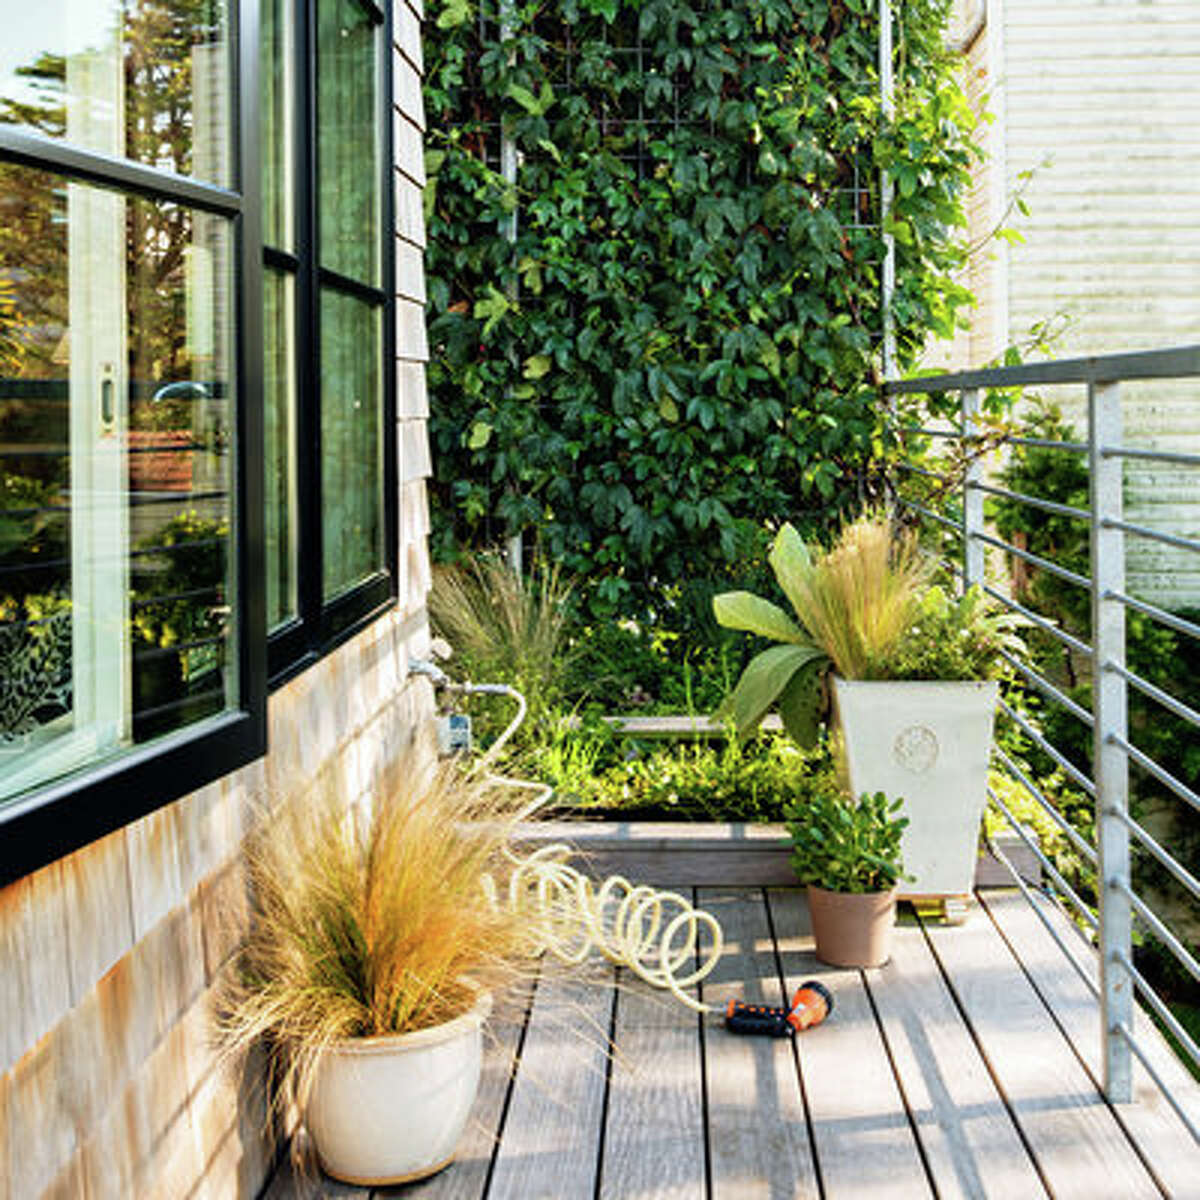 Small space, big potential This home's addition made room for a rooftop garden just off the master bedroom's deck where the family grows herbs, strawberries, and a mini succulent garden, showing a lot can be packed into a small outdoor space.